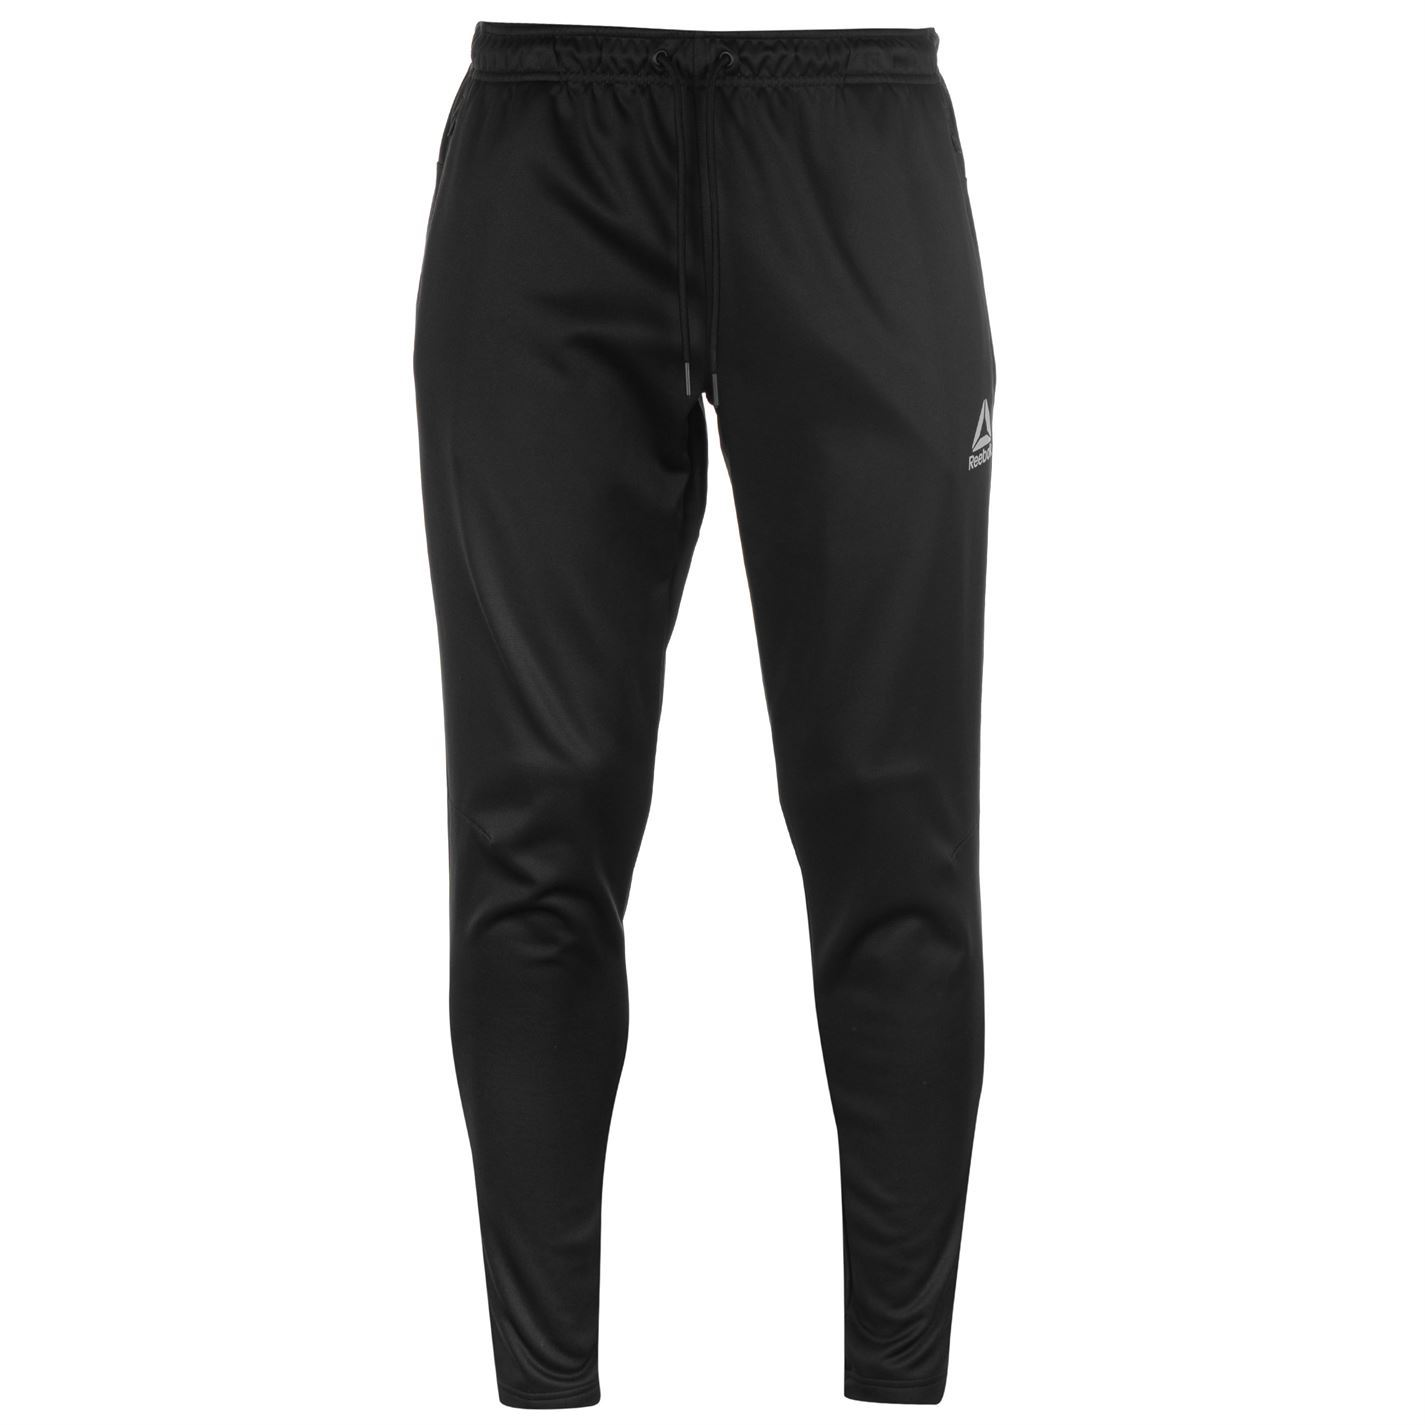 Reebok Mens Elitage Fleece Pants Jogging Bottoms Trousers Zip Warm  Drawstring 496874e646